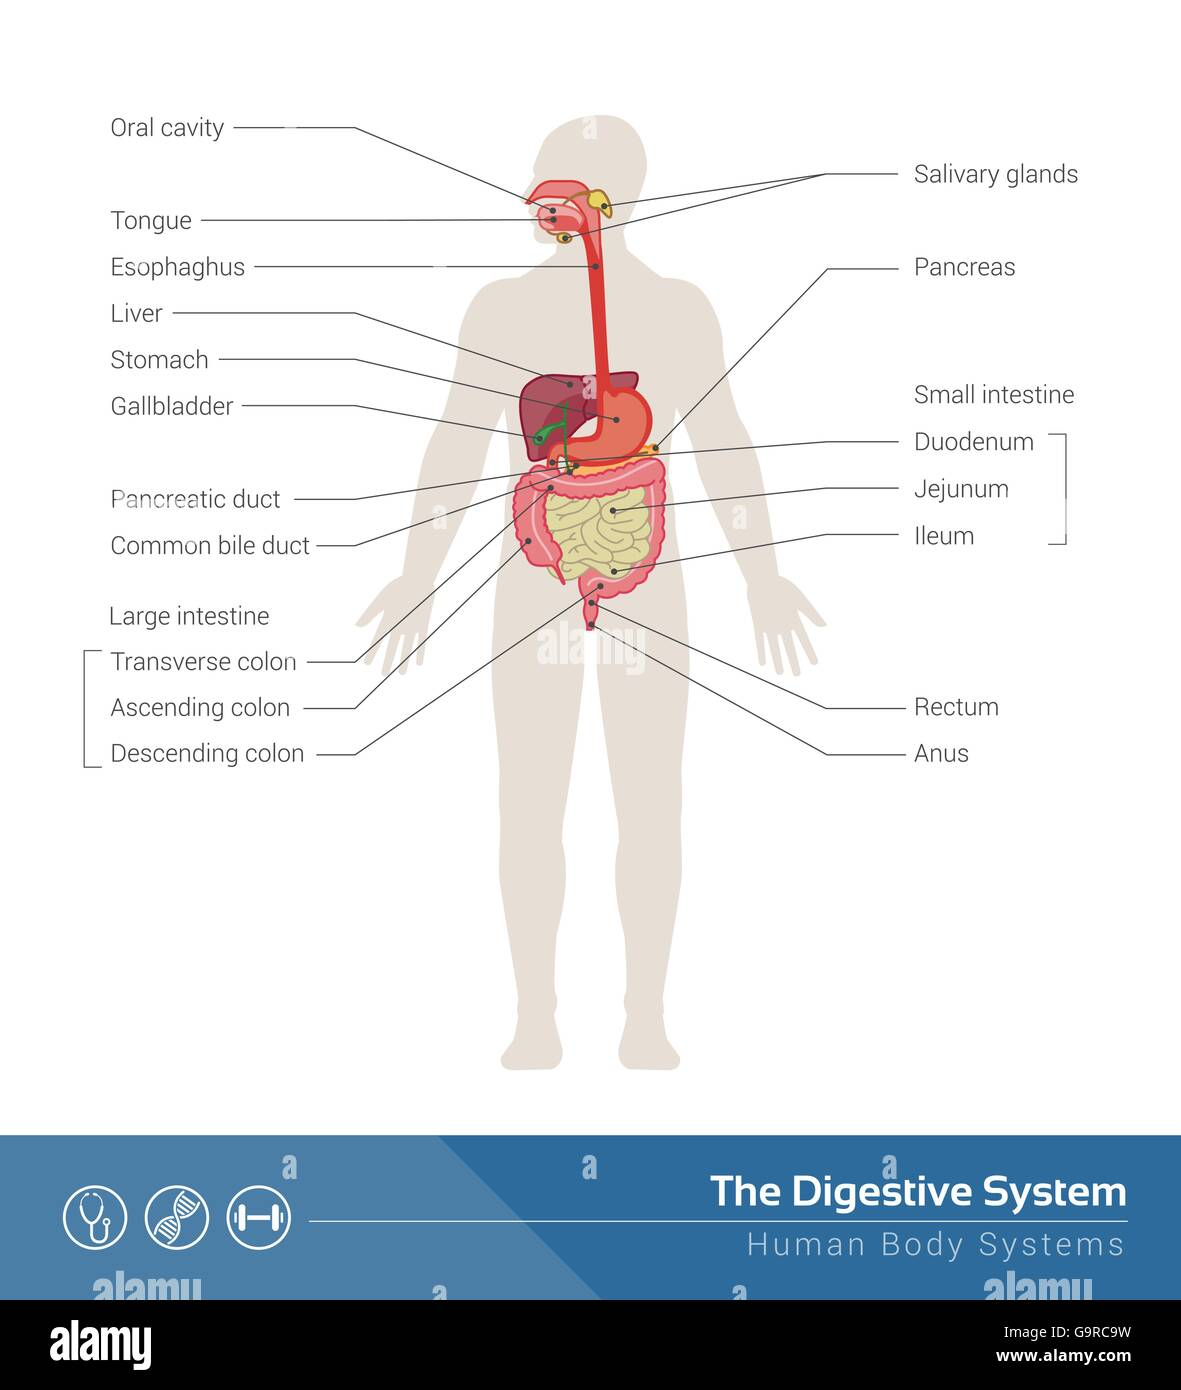 The human digestive system medical illustration with internal organs the human digestive system medical illustration with internal organs ccuart Image collections